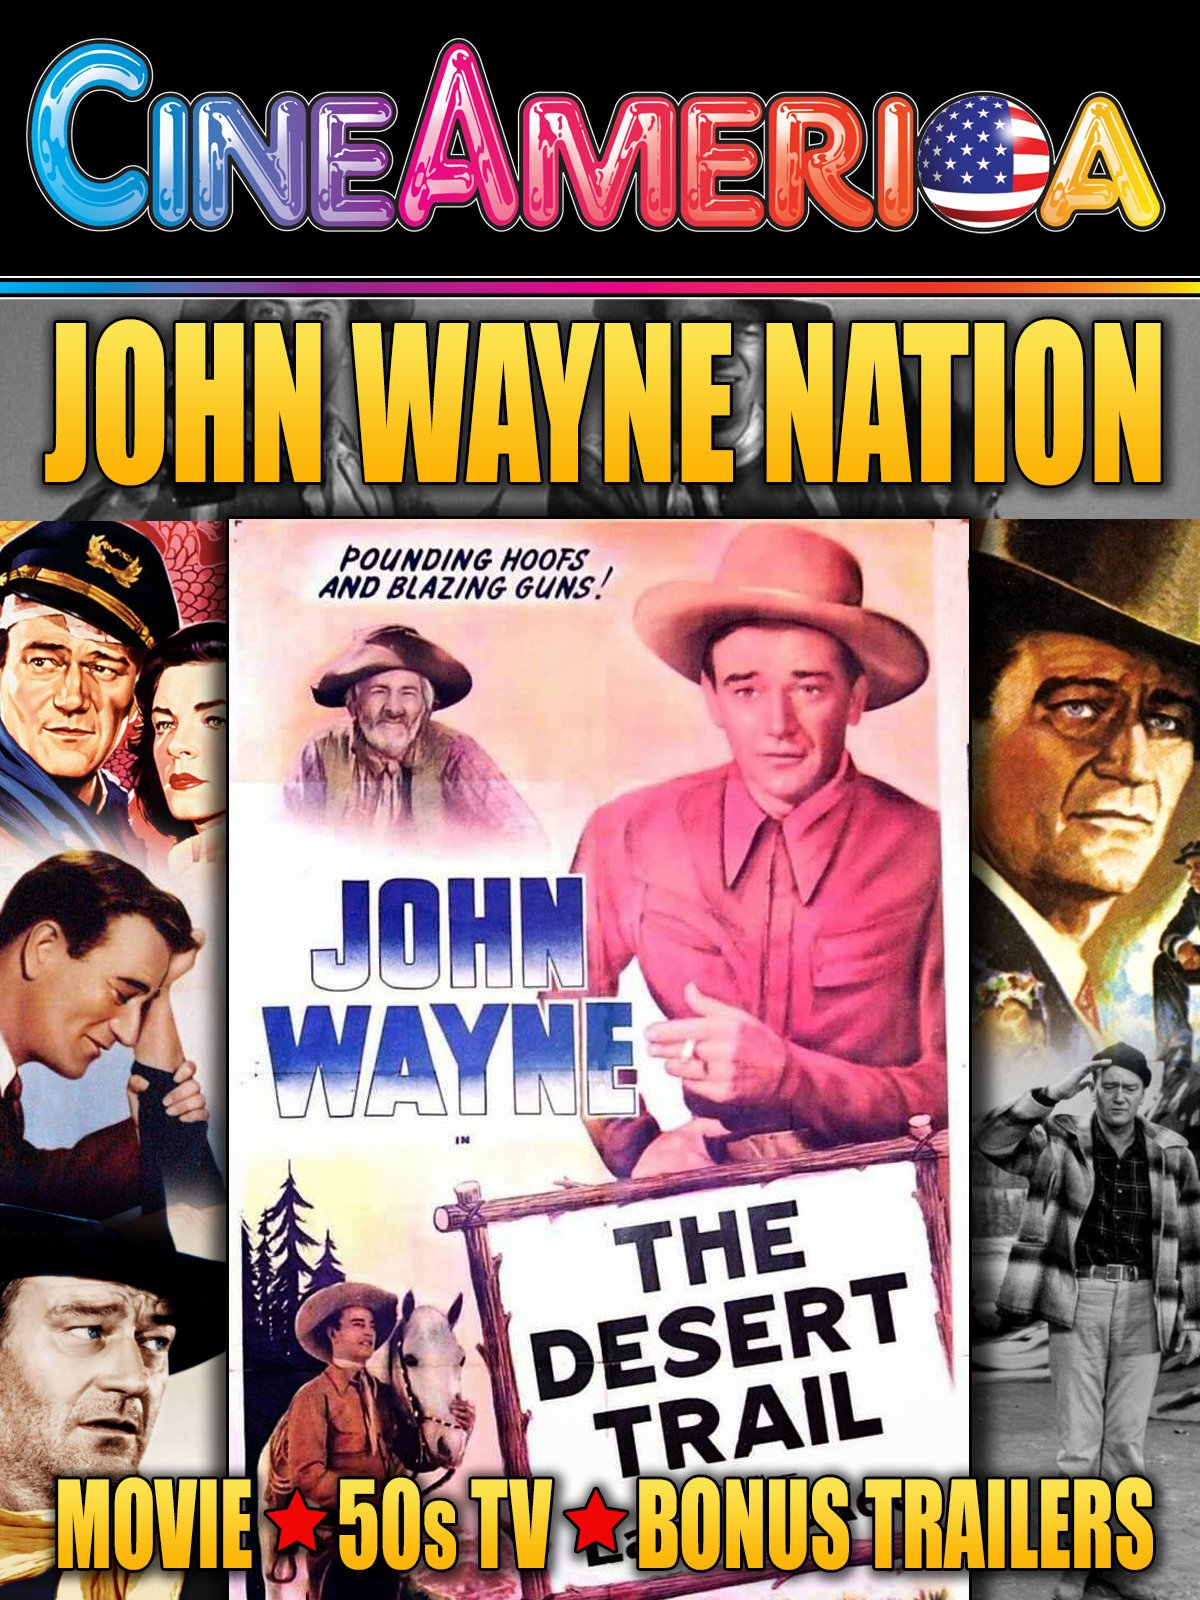 John Wayne Nation